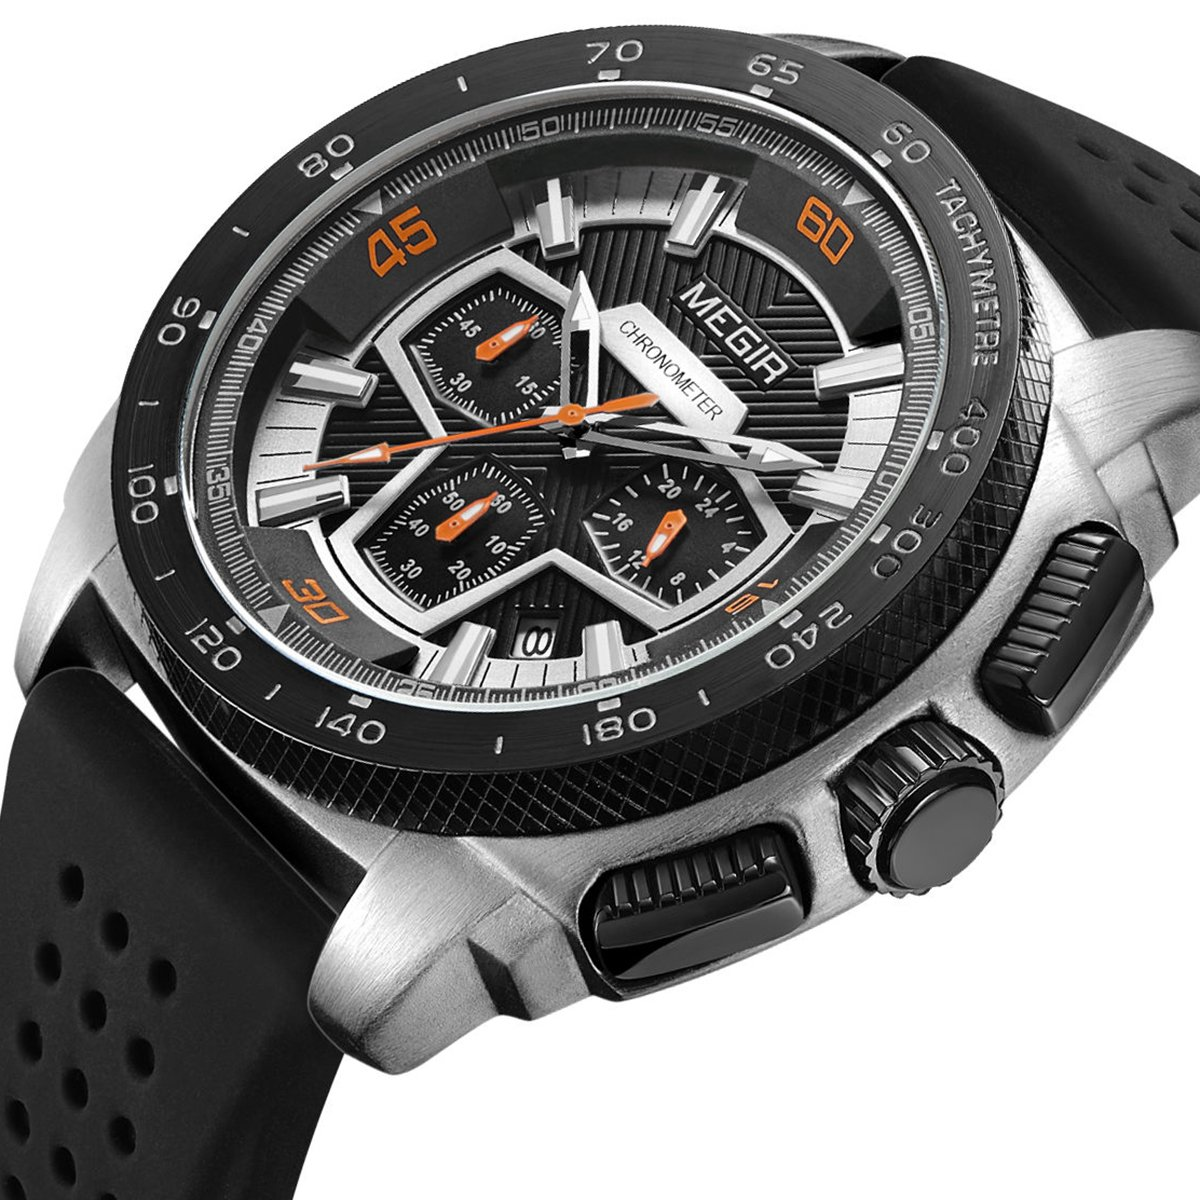 Watches for Men Analog Waterproof Chronograph Quartz Silicone Watches for LIANDU Brand (black)